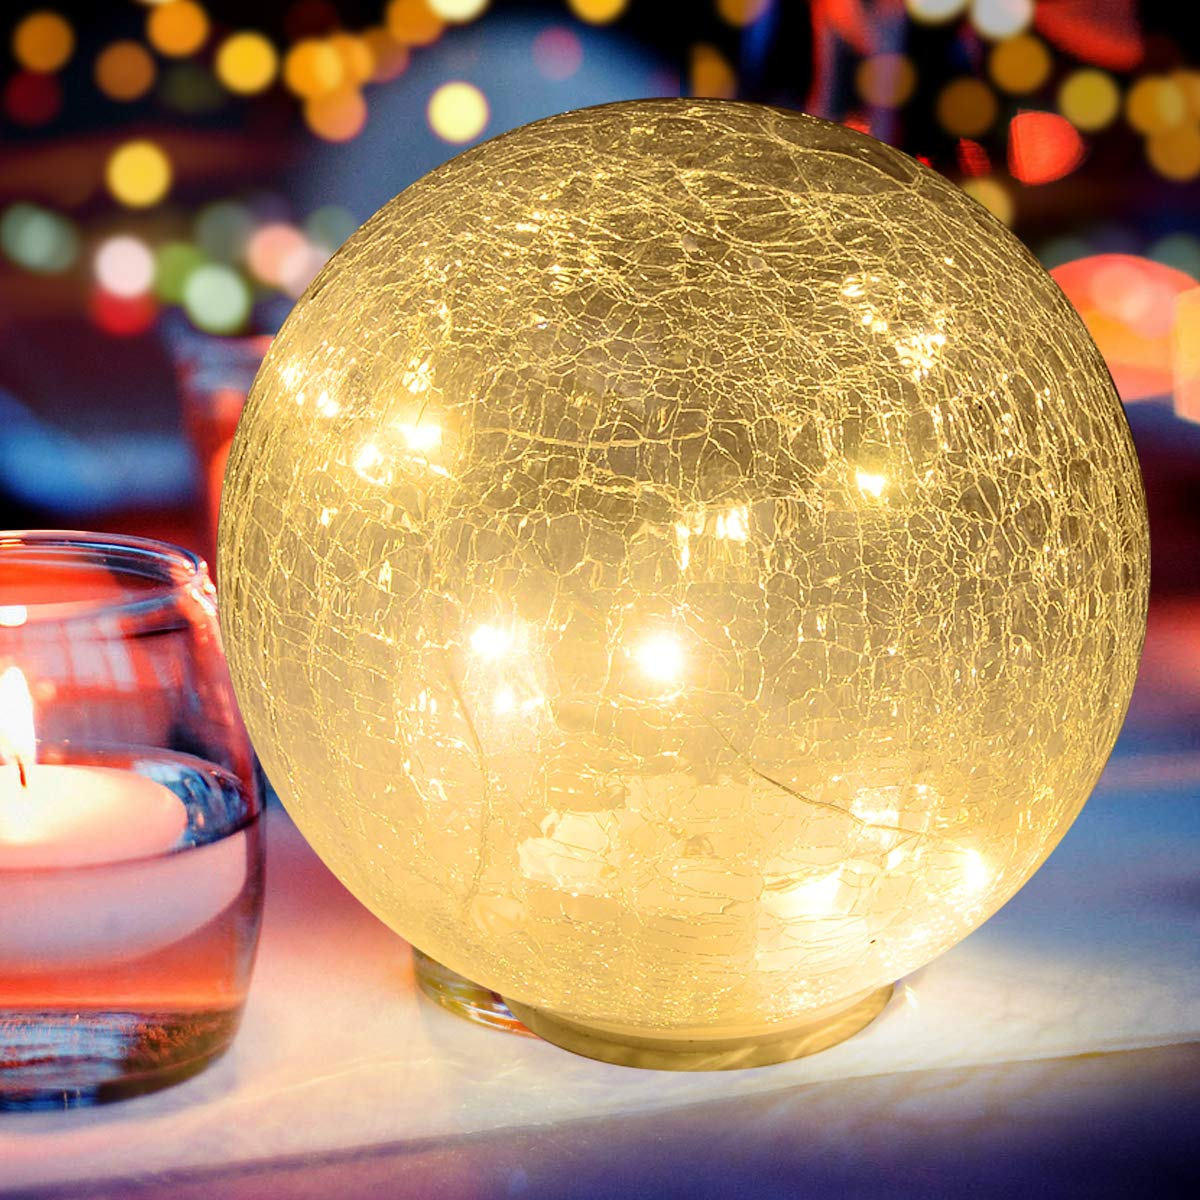 Glass Ball LED Light Wireless Crackle Glass Light Warm White Night Lamp for Bedroom Living-room Dresser Nursery Kitchen Garden Restaurant Modern Glass Decoration Glass Craft